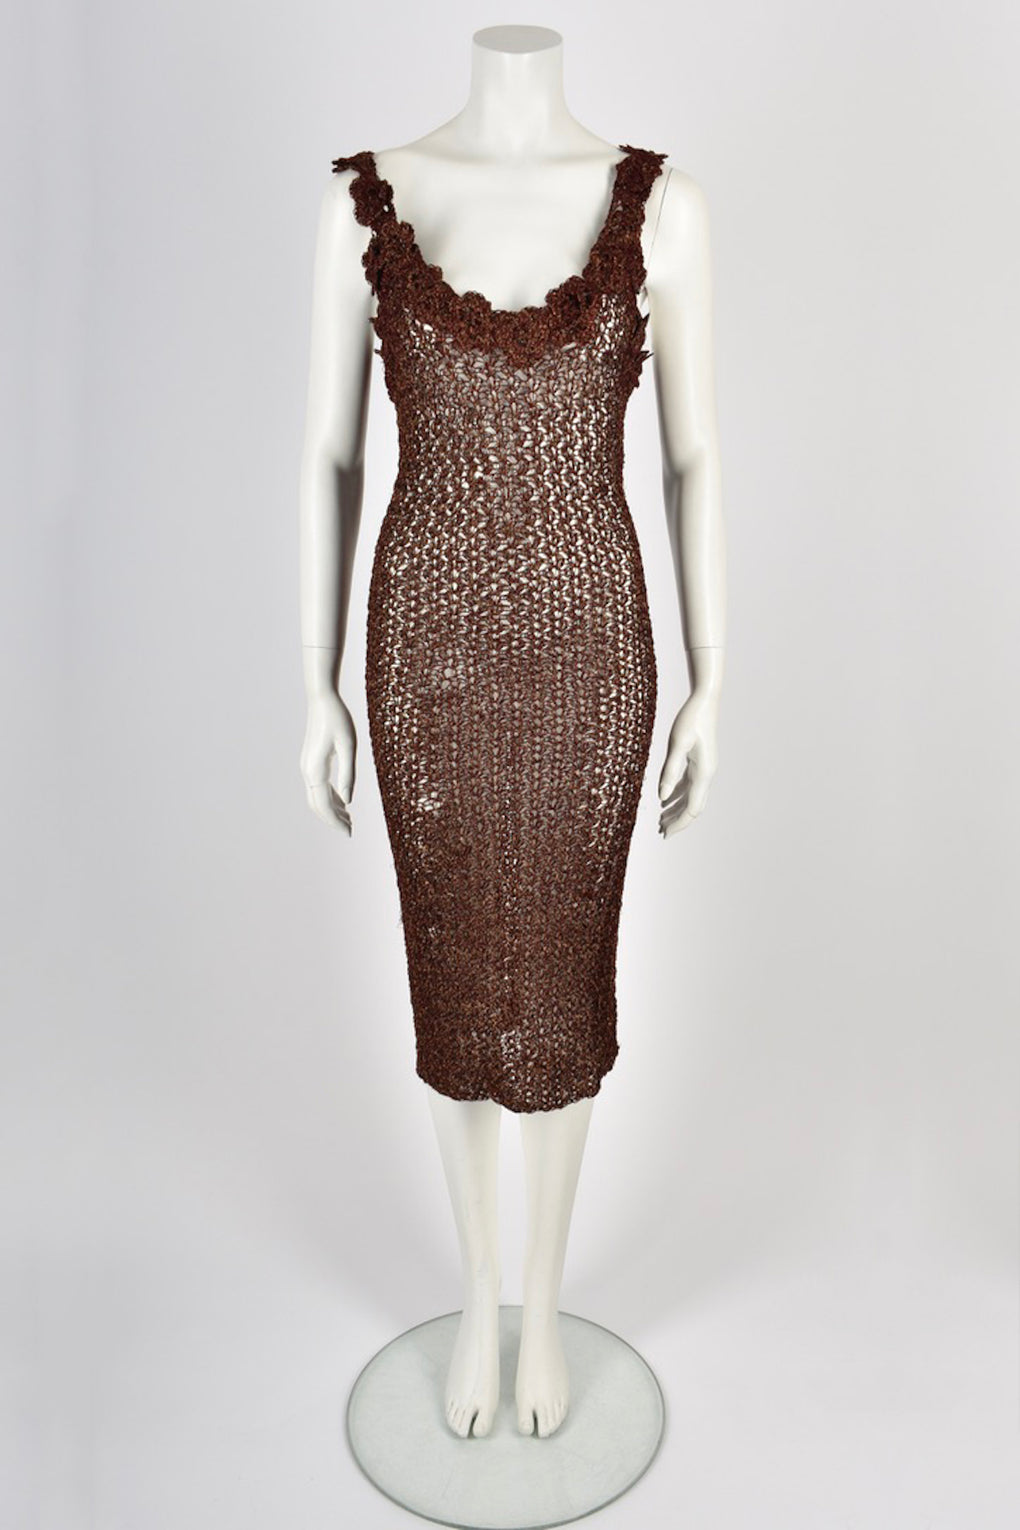 LAINEY brown crochet sparkly dress M